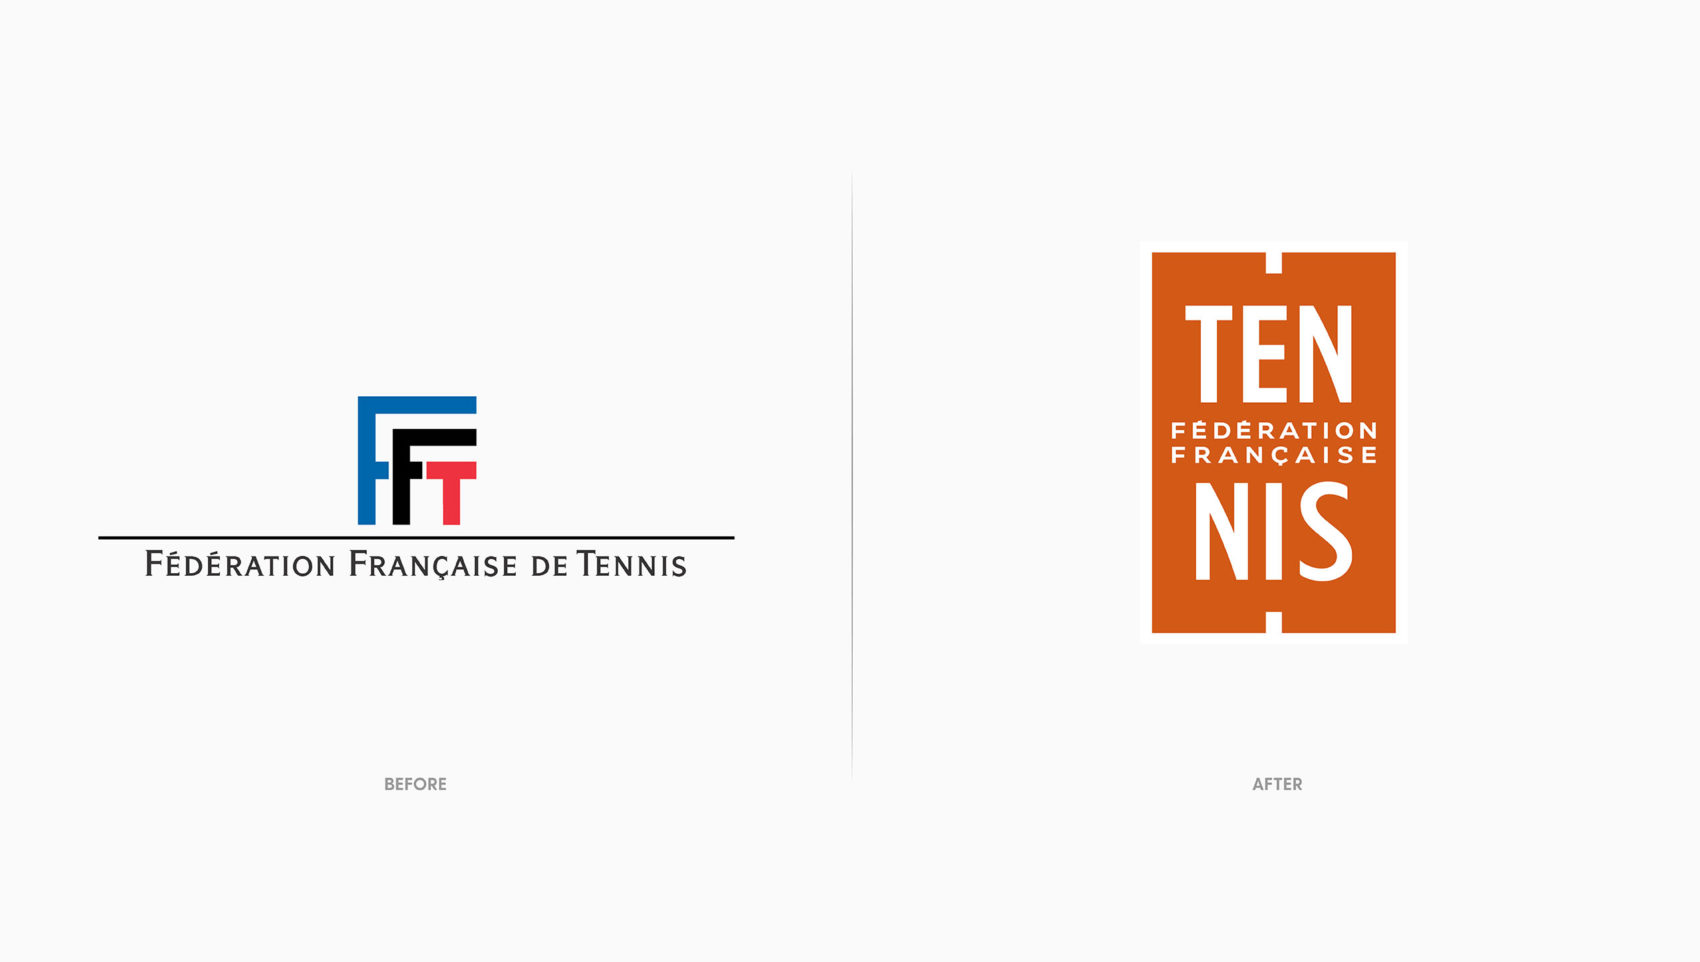 Projet_project_realisation_FFT_federation_francaise_french_tennis_logos_english